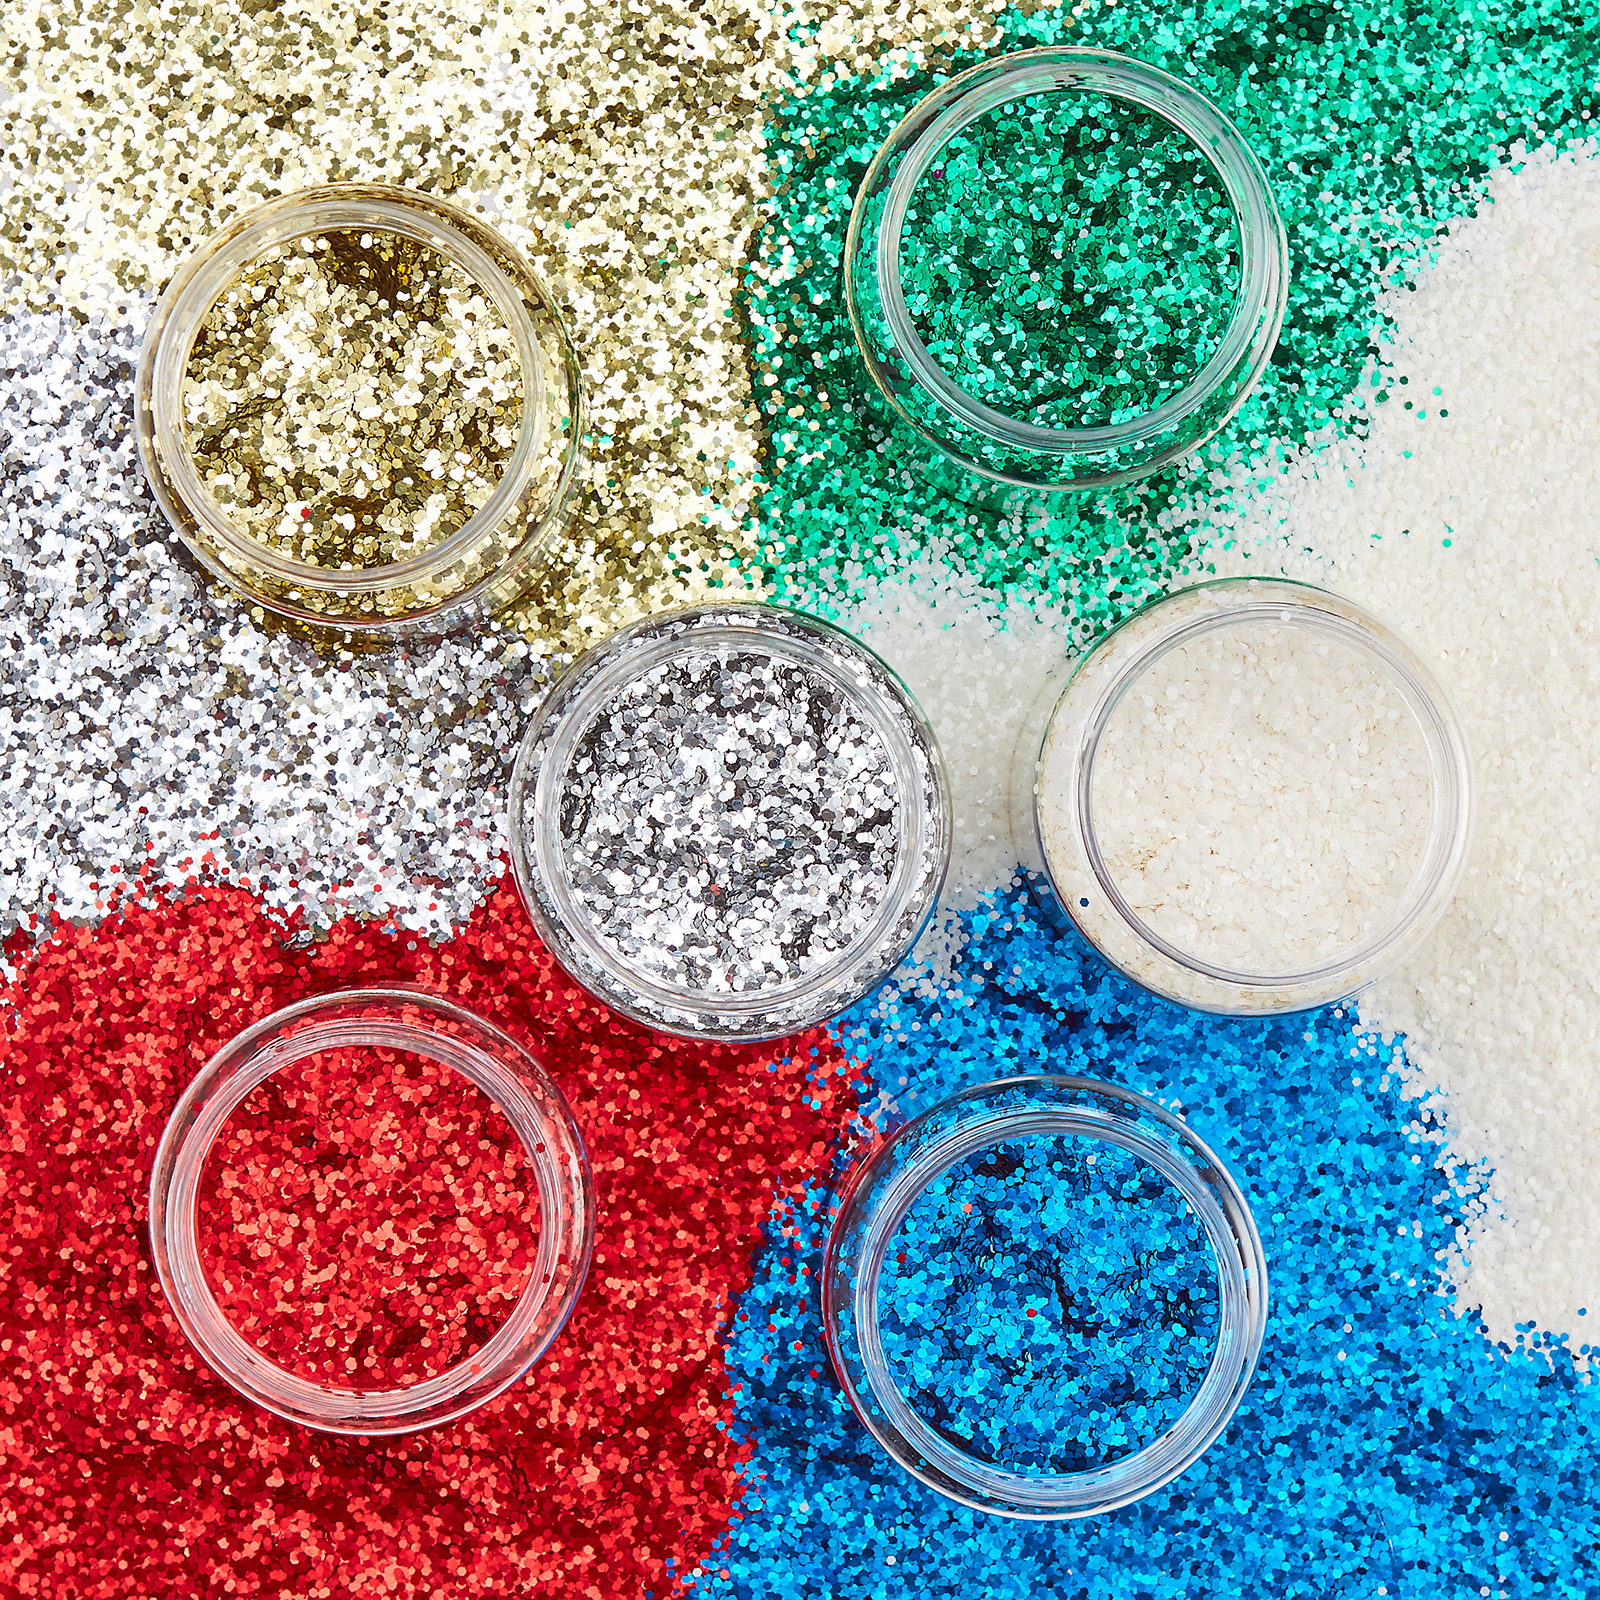 Introducing Biodegradable Glitter